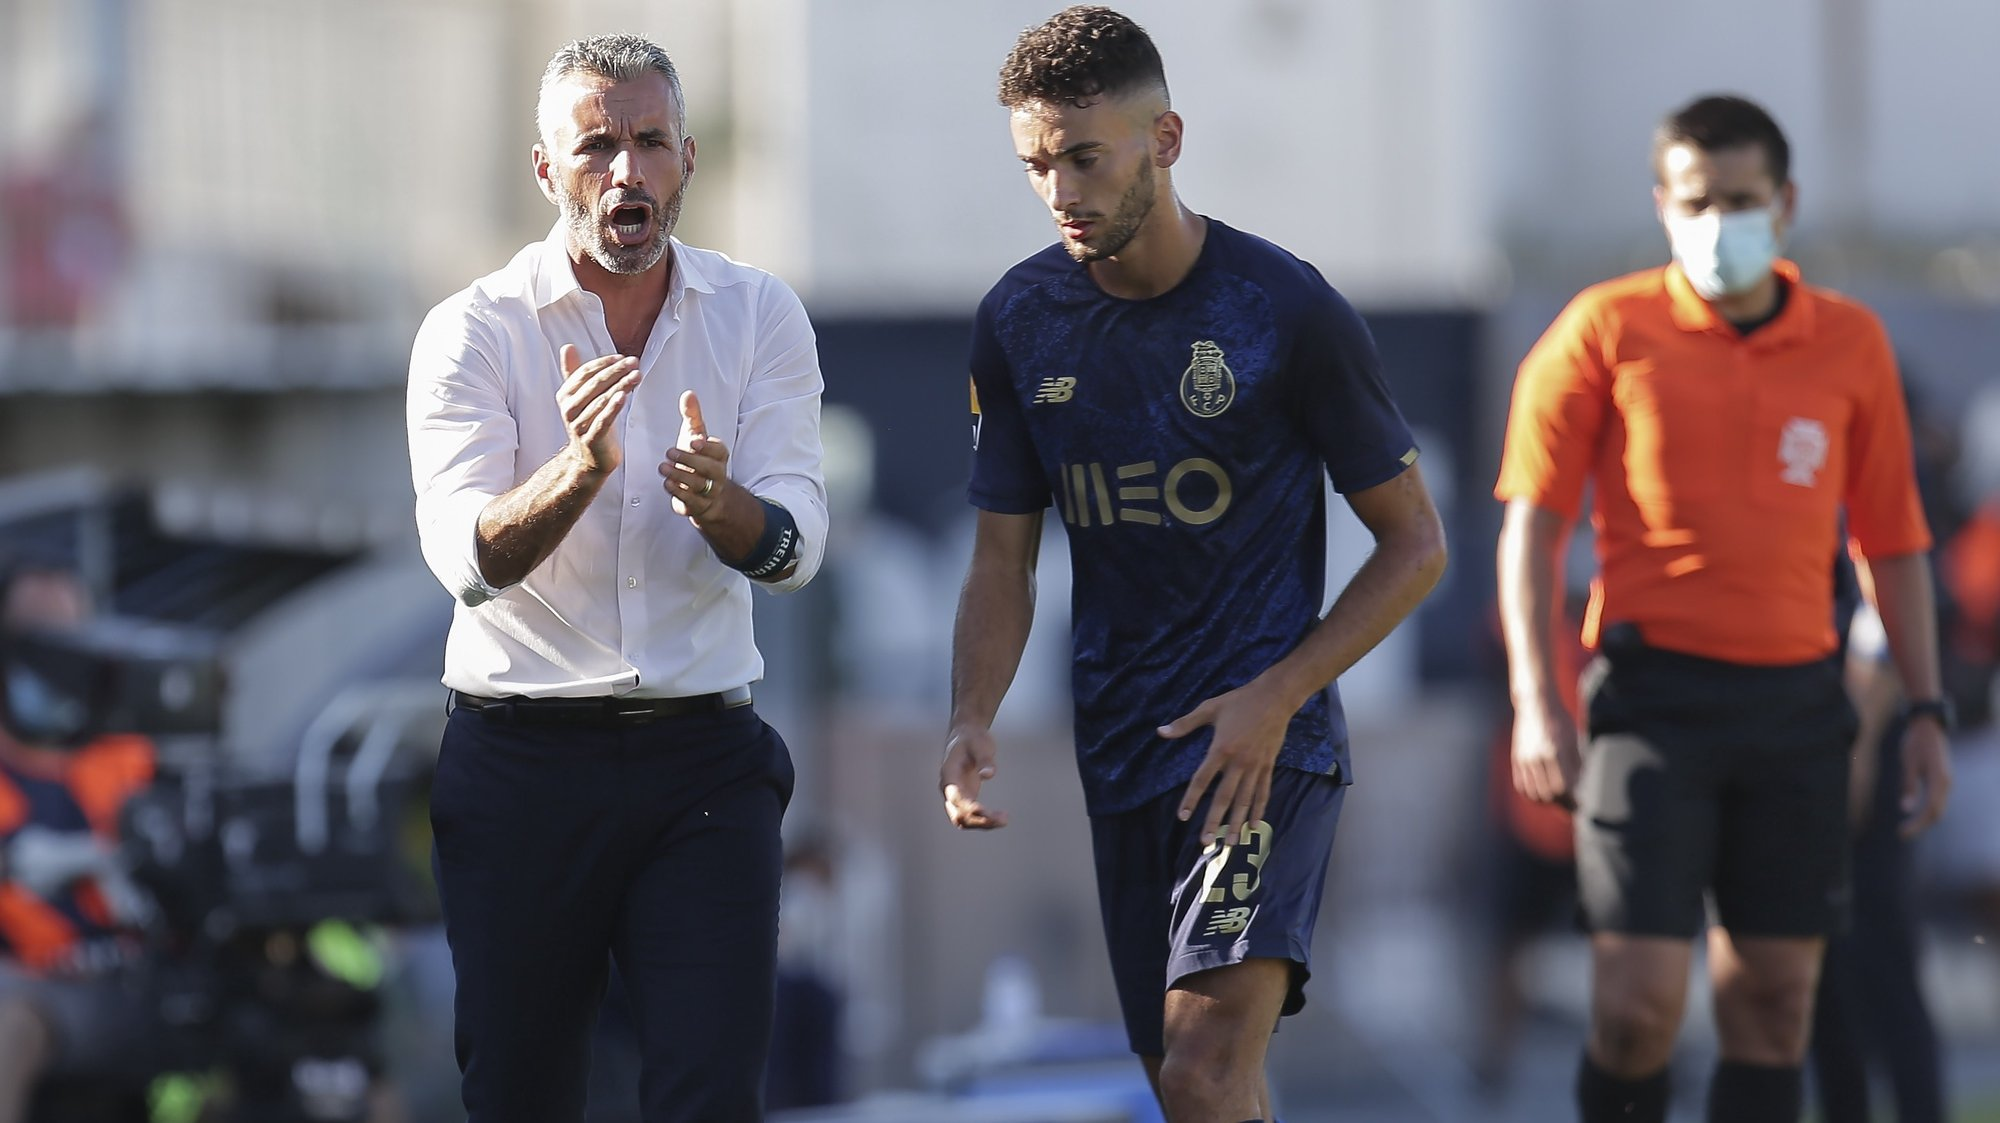 Famalicao head coach Ivo Vieira reacts during their Portuguese First League soccer match against FC Porto held at Famalicao Municipal Stadium, Portugal, 15th August 2021, MANUEL FERNANDO ARAUJO/LUSA